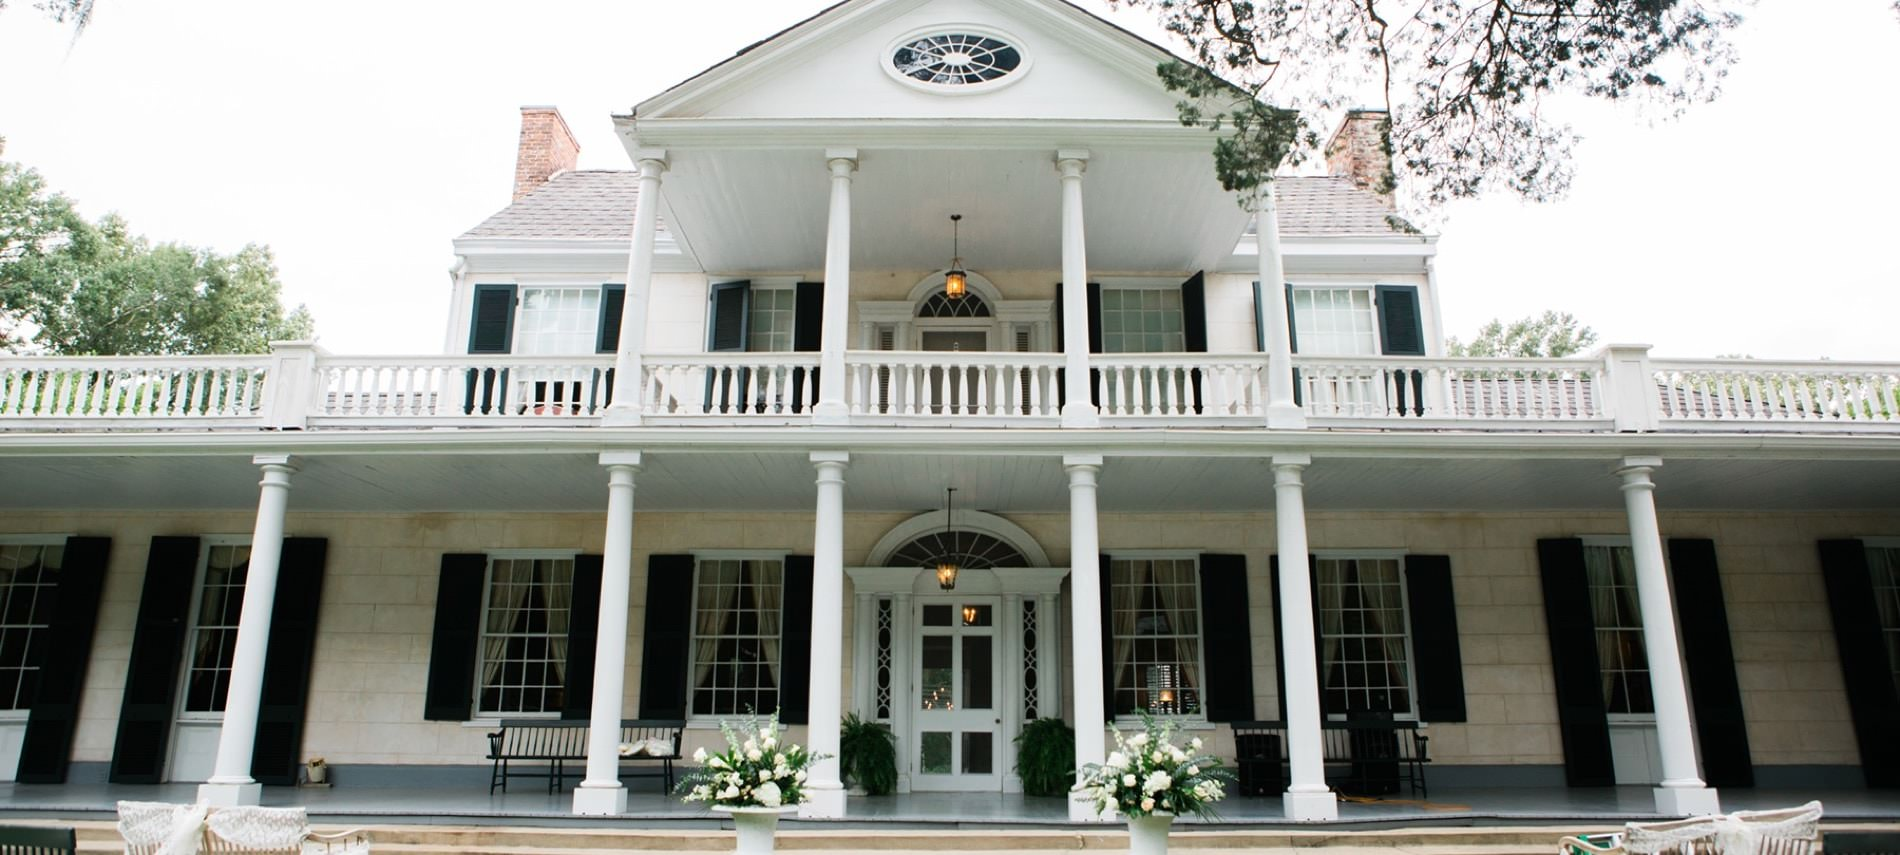 Front view of two story b&b with white stone siding, dark shutters around many windows, white pillars, and intricate white front door